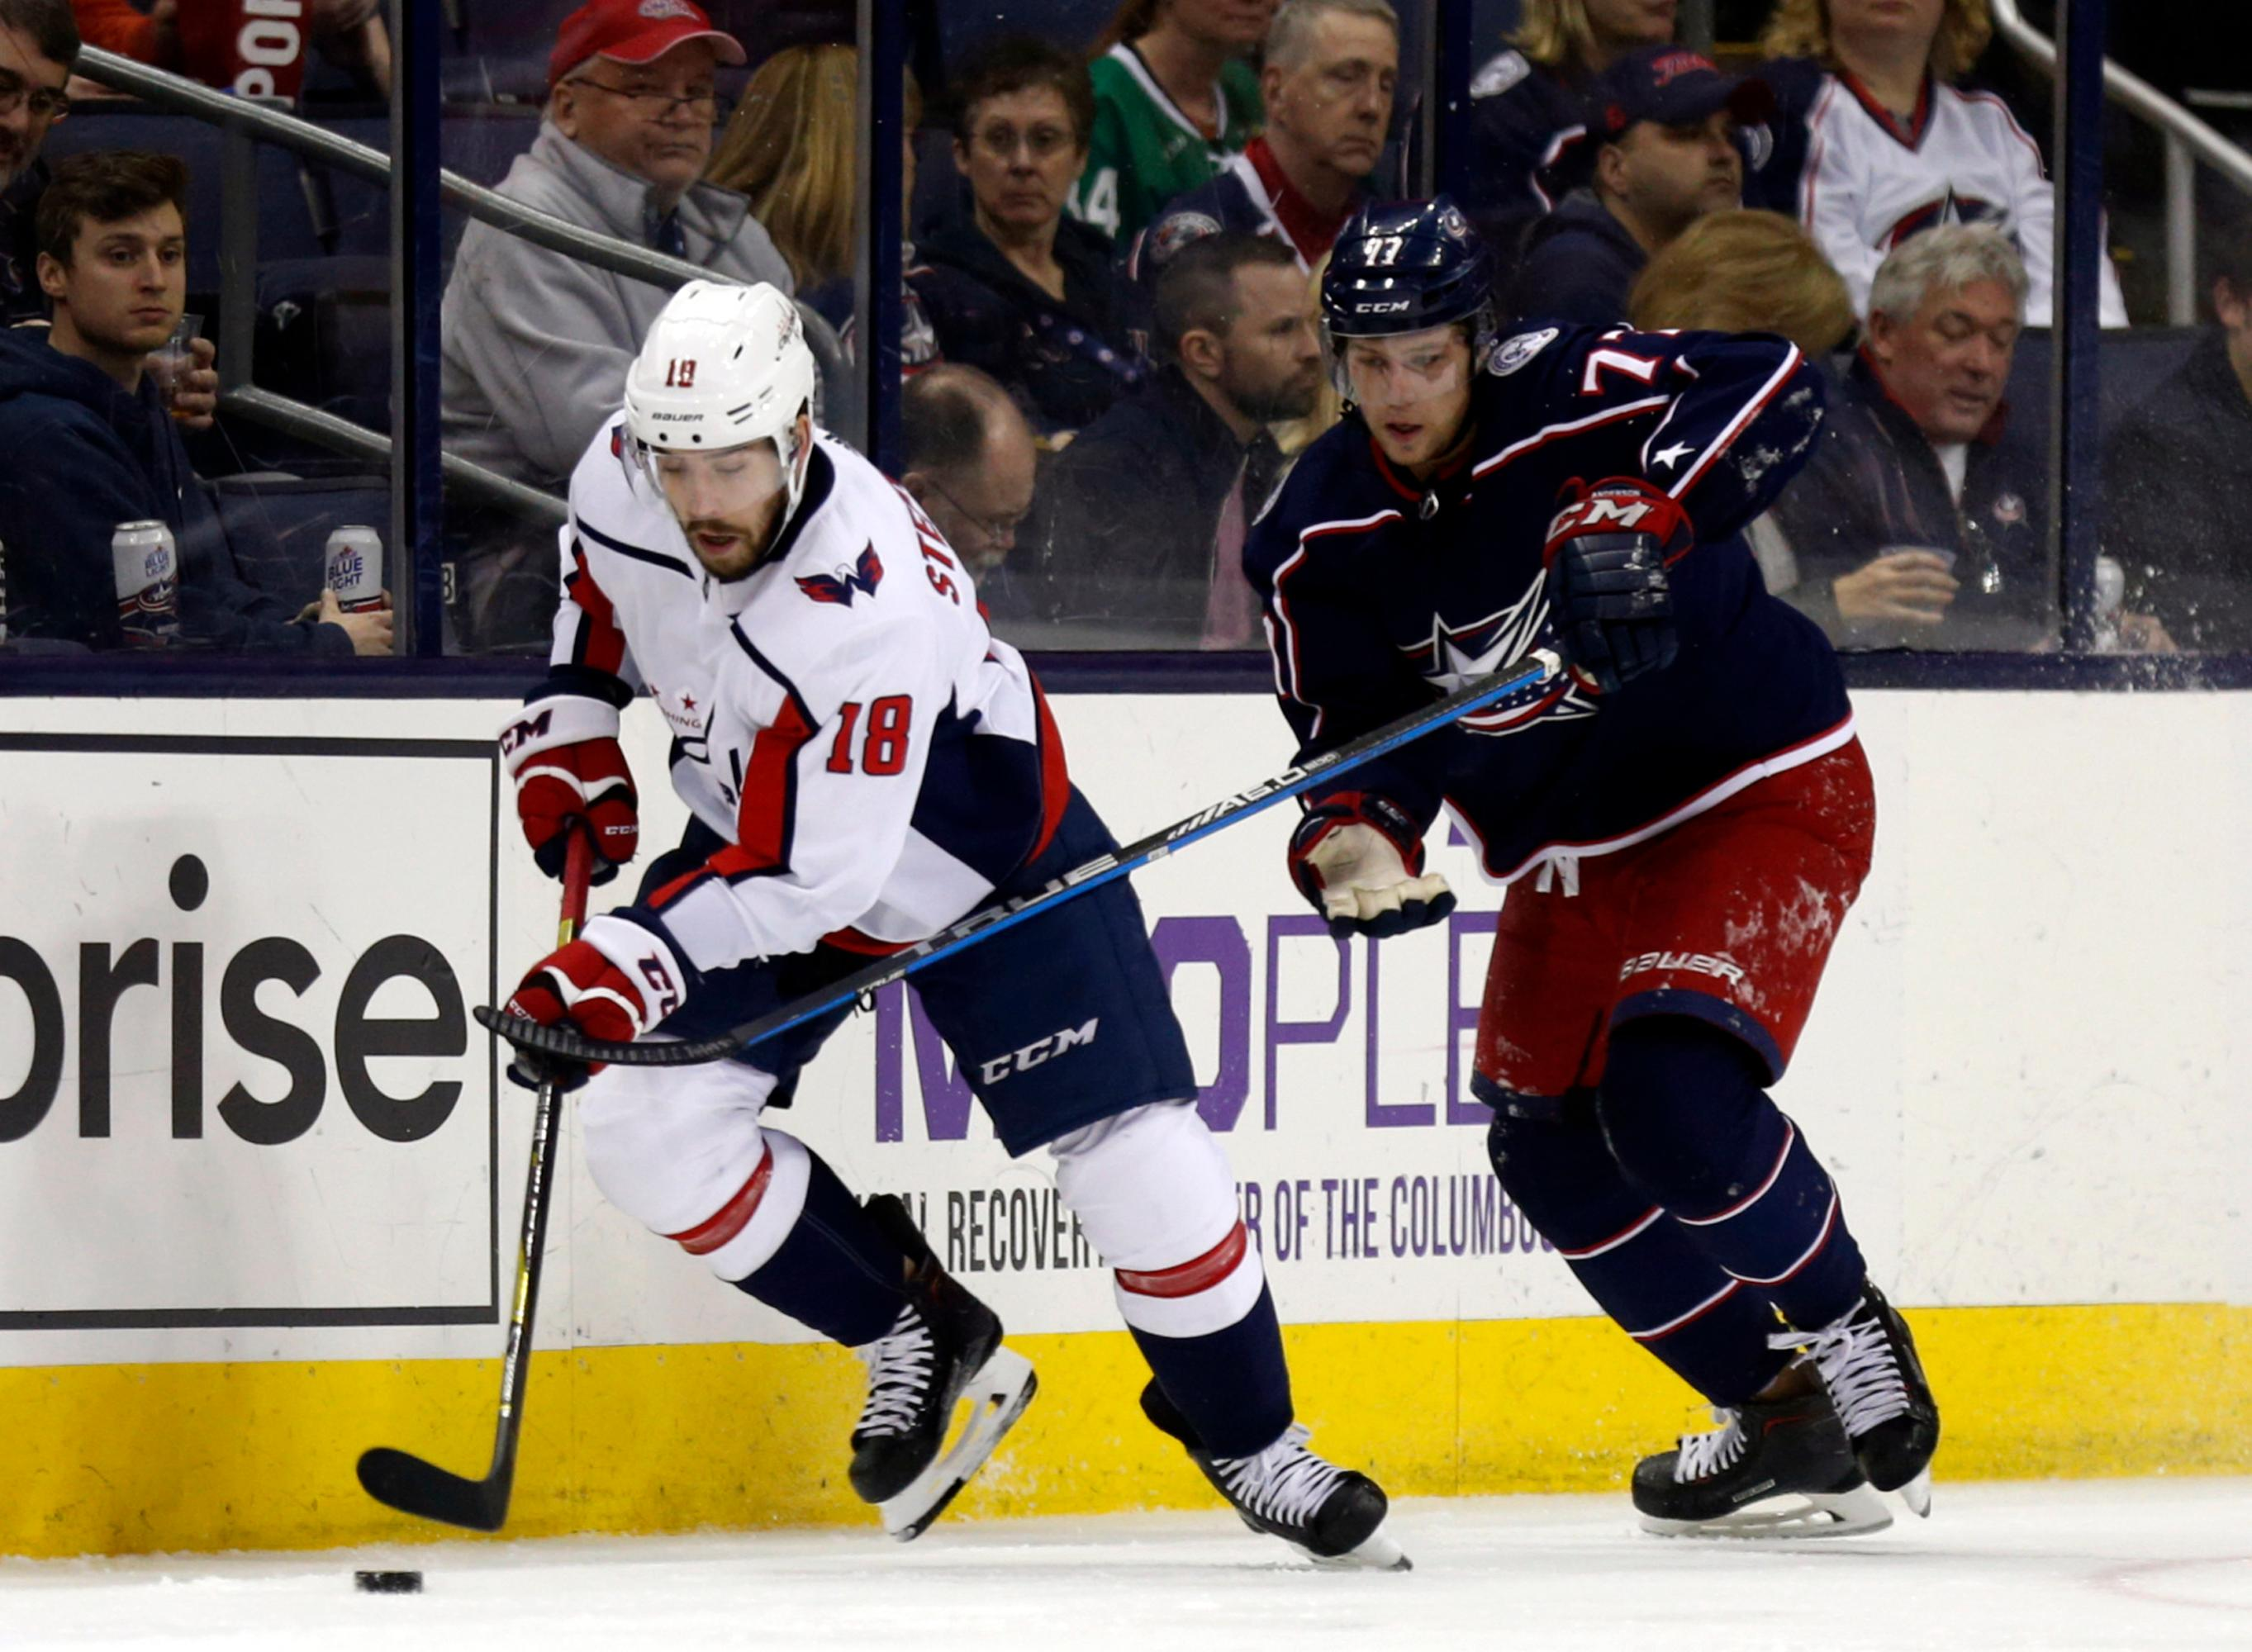 Washington Capitals forward Chandler Stephenson, left, works against Columbus Blue Jackets forward Josh Anderson during the second period of an NHL hockey game in Columbus, Ohio, Monday, Feb. 26, 2018. (AP Photo/Paul Vernon)